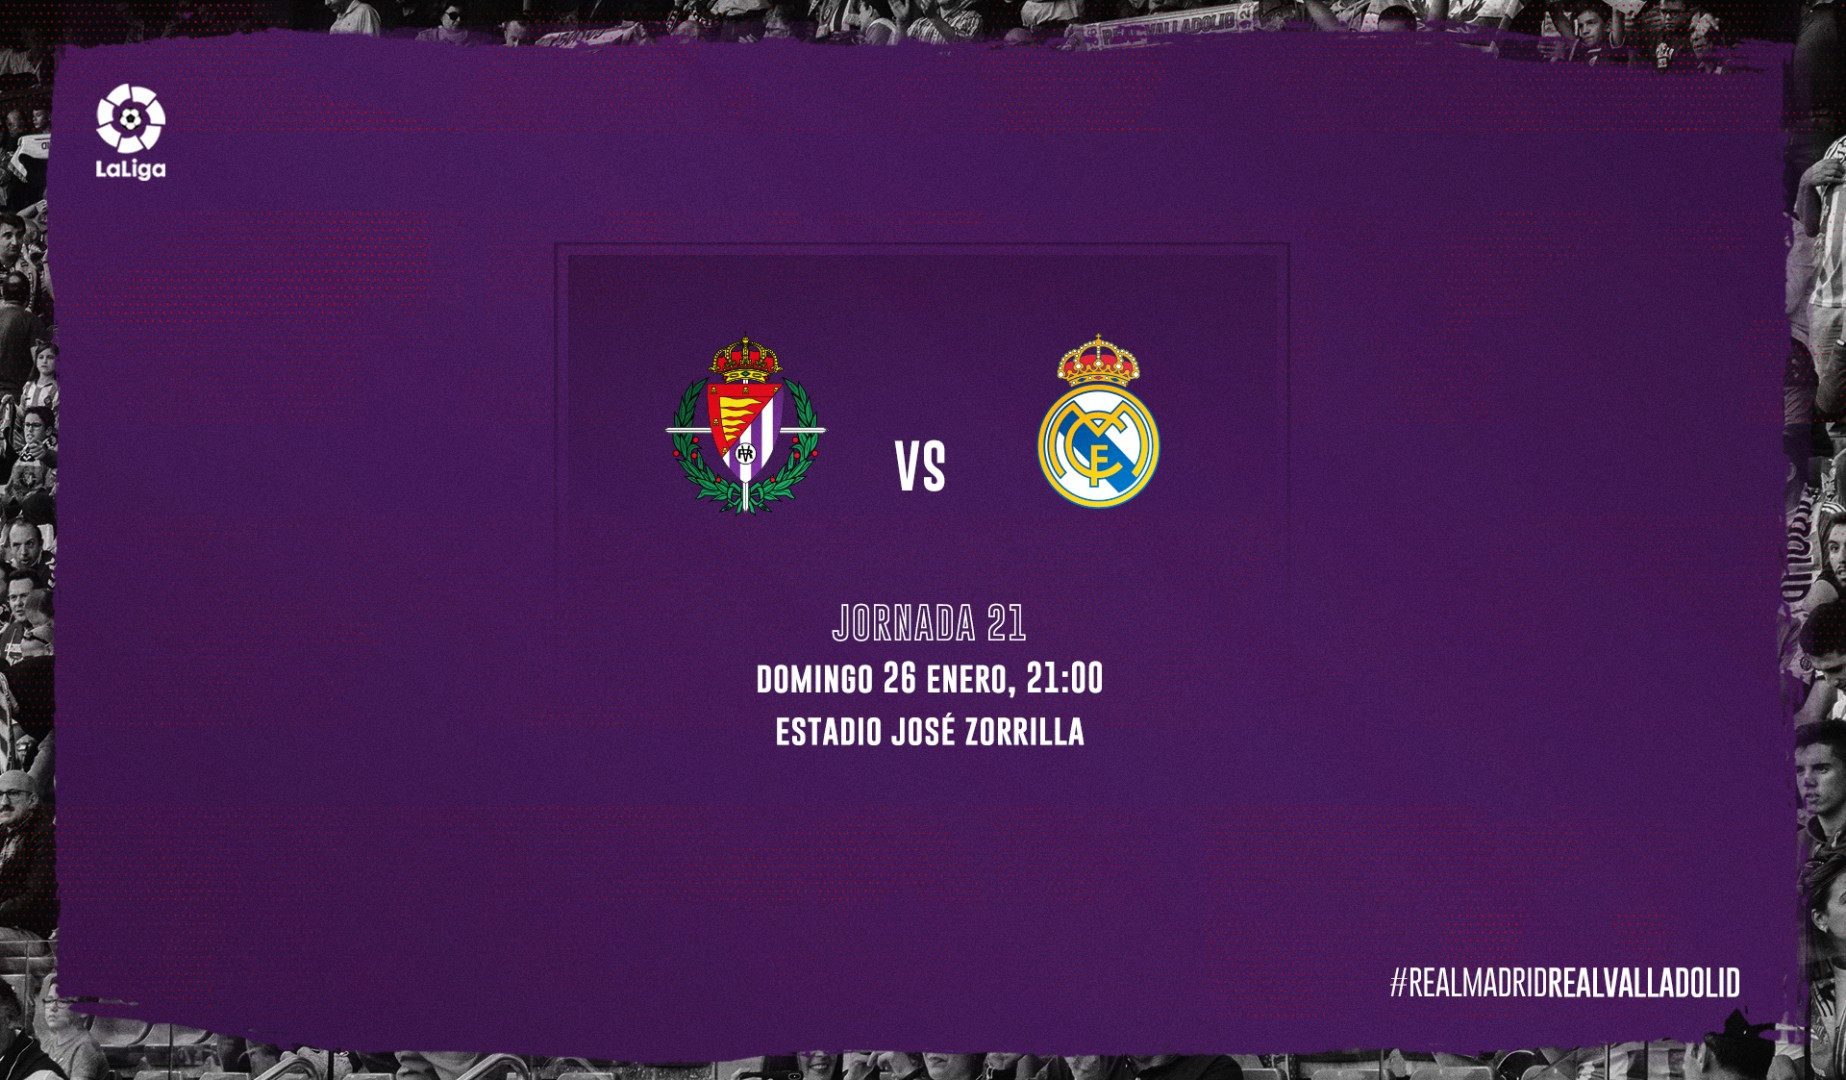 Real Valladolid C.F. - Real Madrid C.F. Domingo 26 de Enero. 21:00 Previa